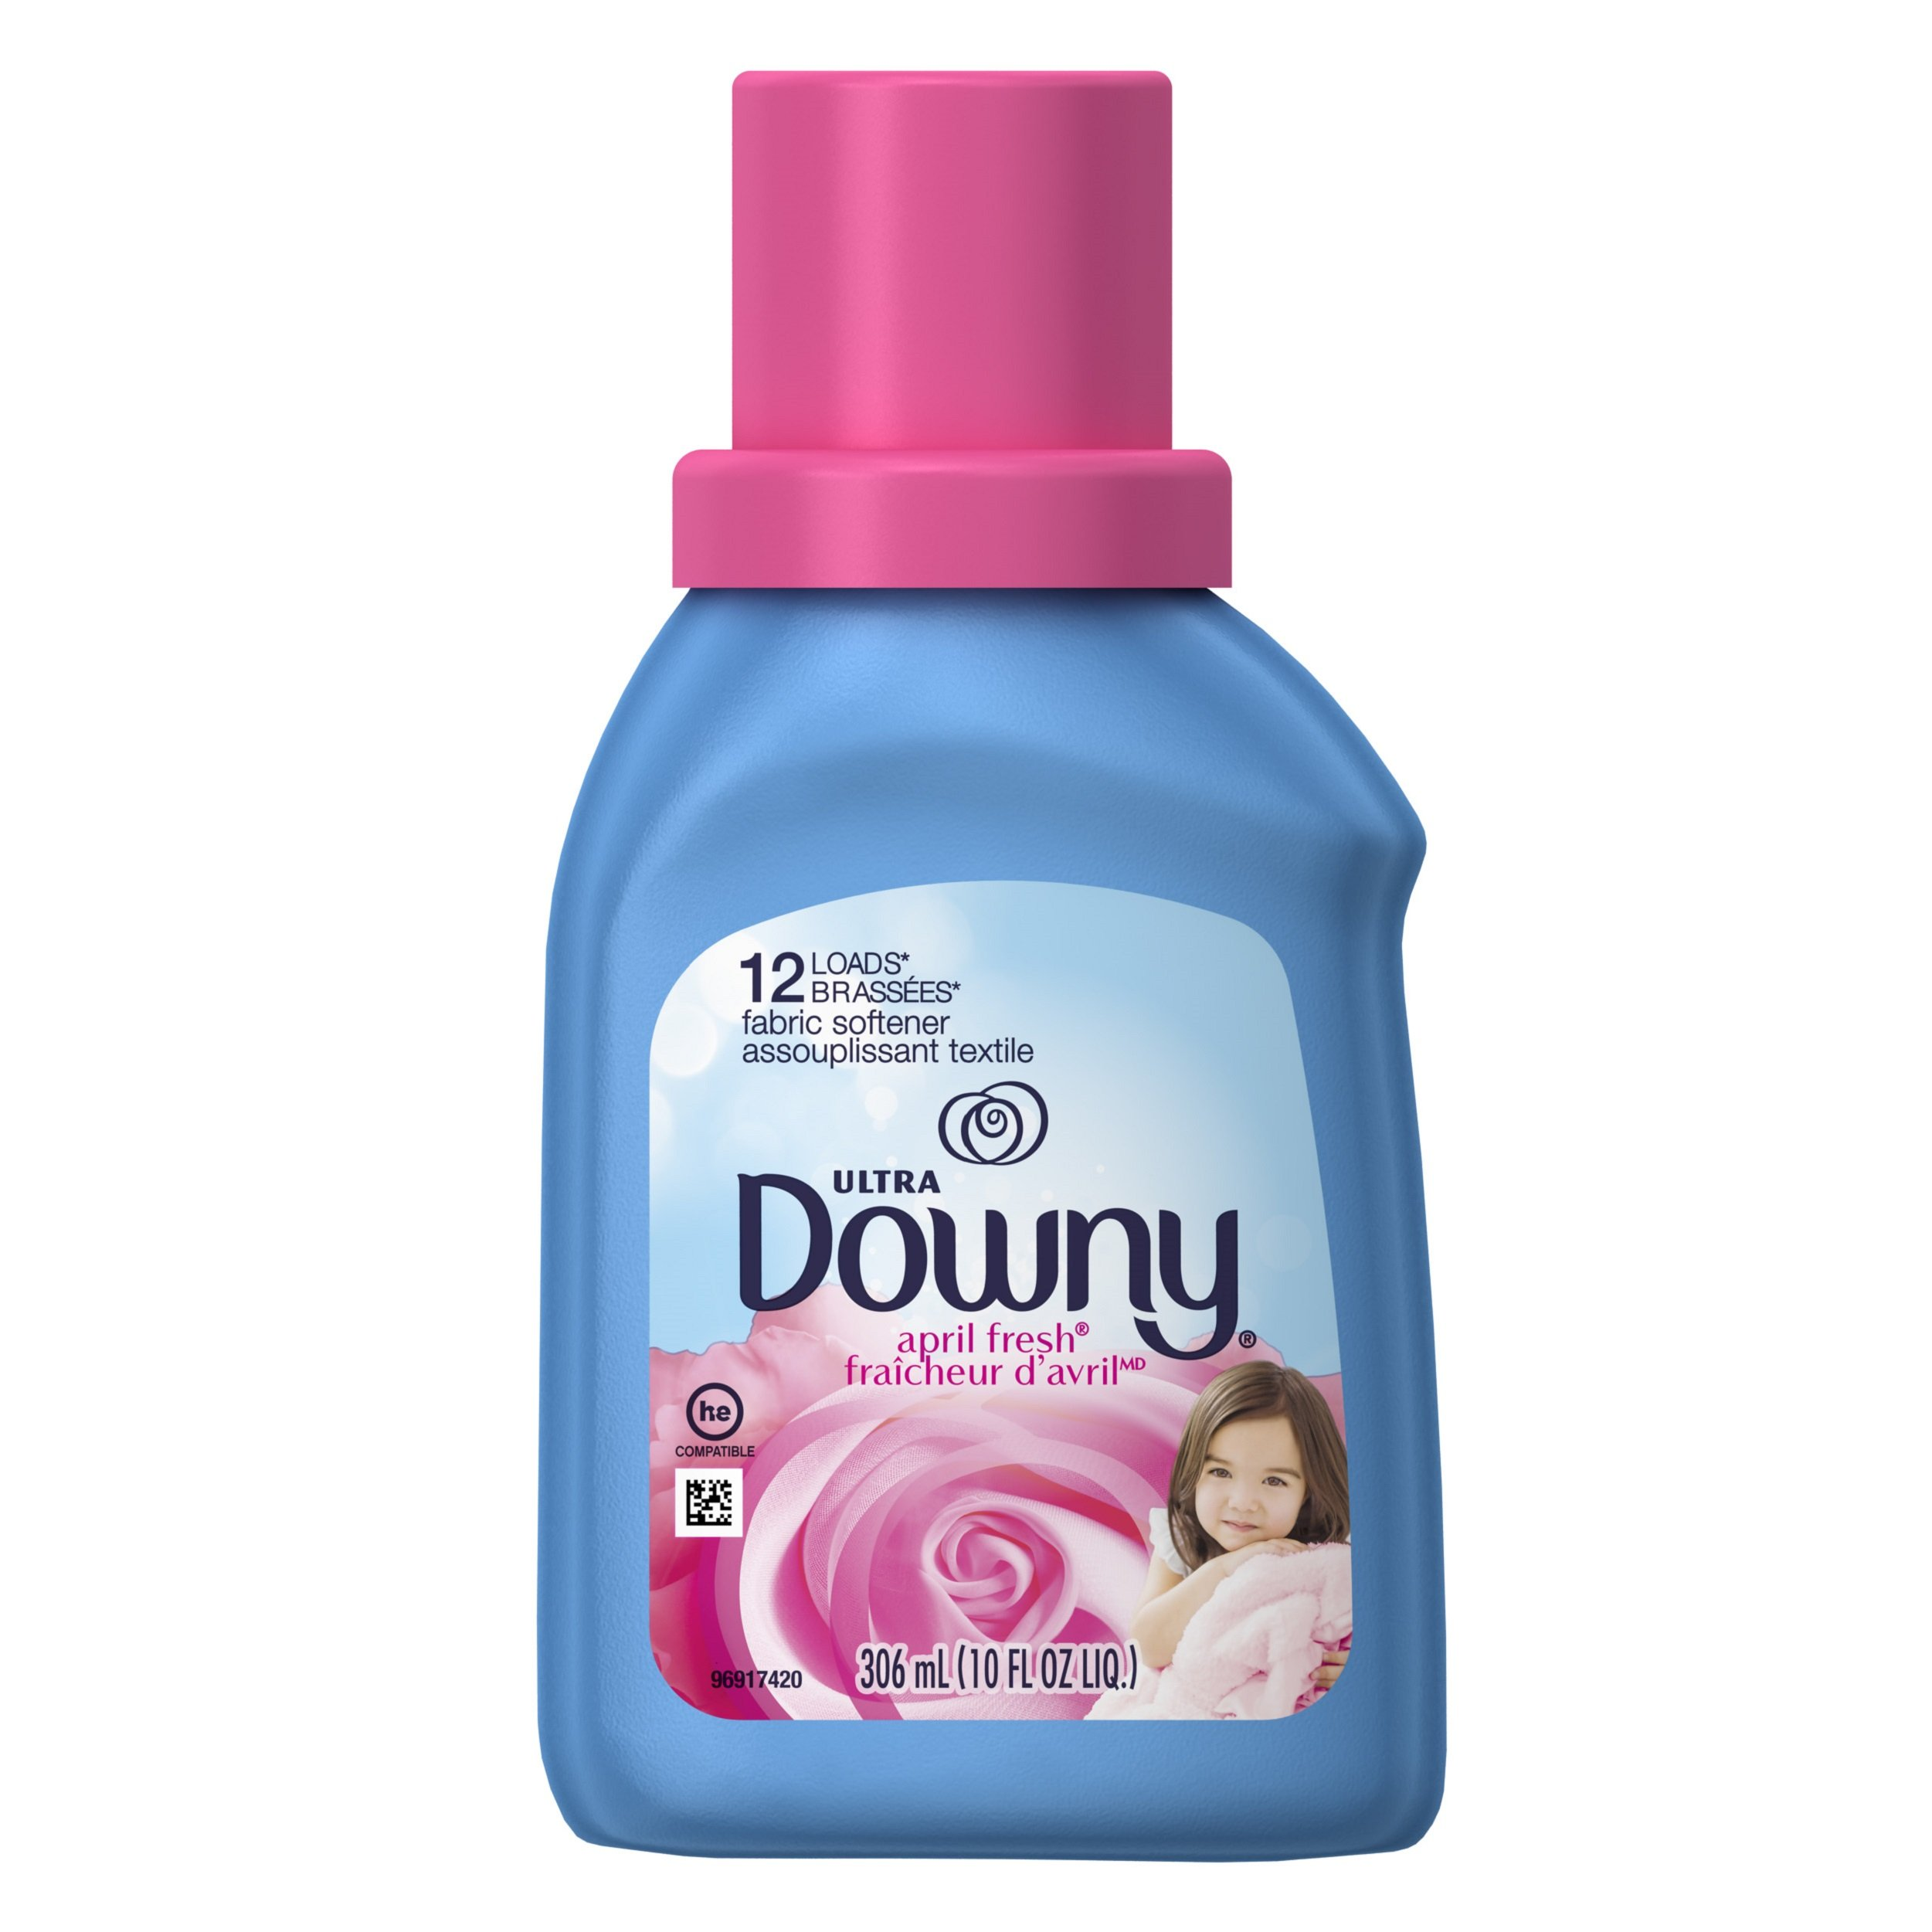 Downy April Fresh Liquid Fabric Conditioner (Fabric Softener), 10 FL OZ